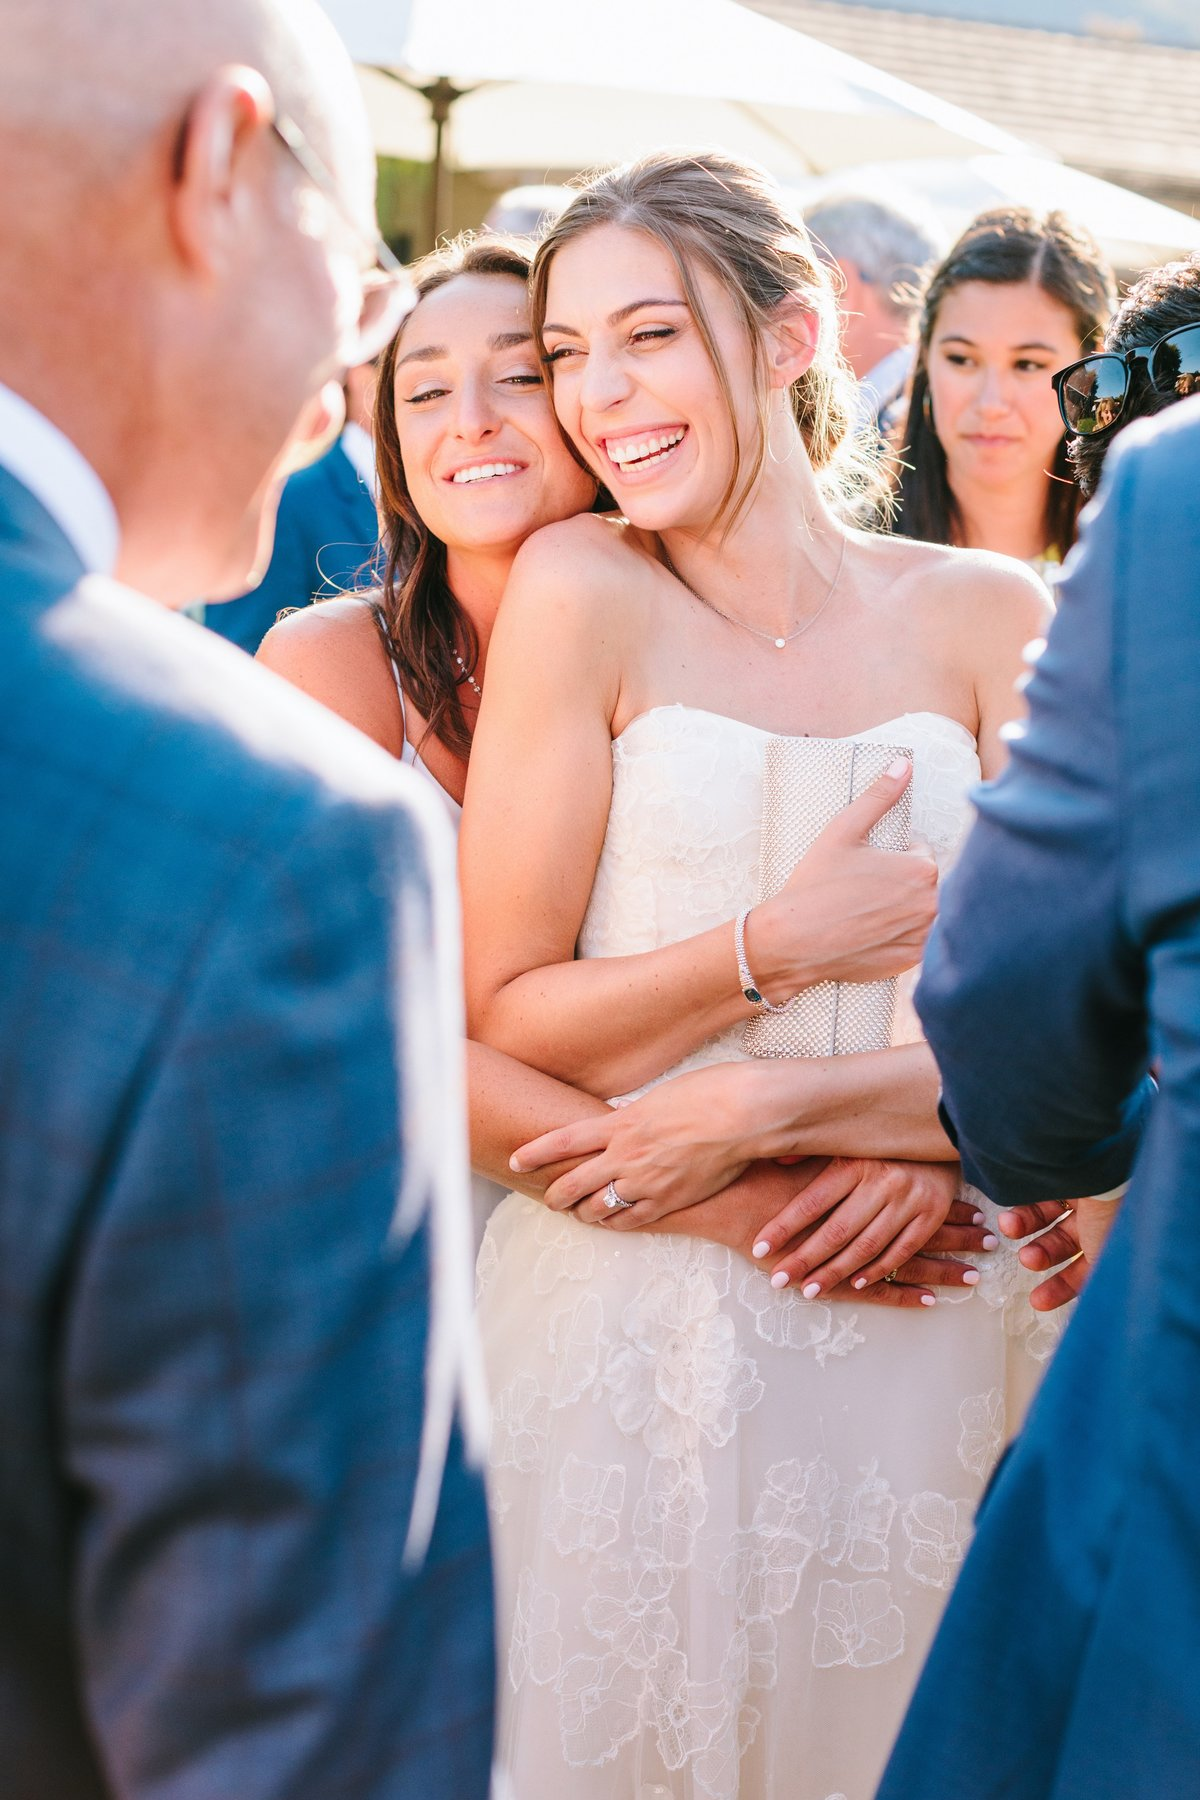 Best California Wedding Photographer-Jodee Debes Photography-128